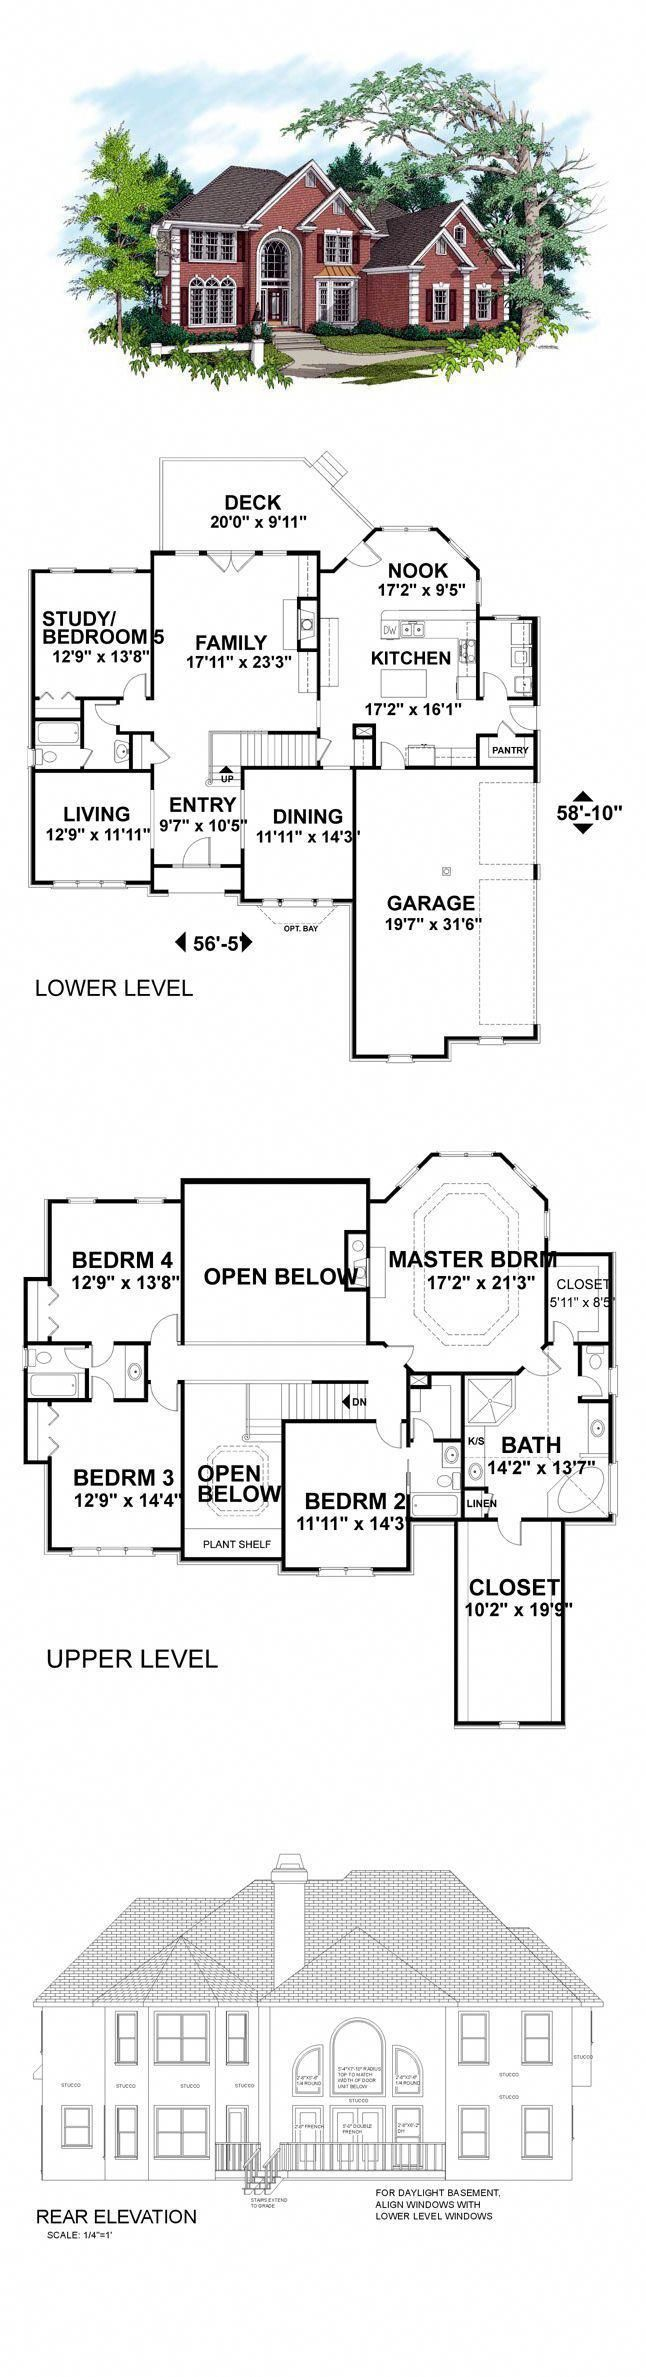 Colonial Style COOL House Plan ID chp 17912